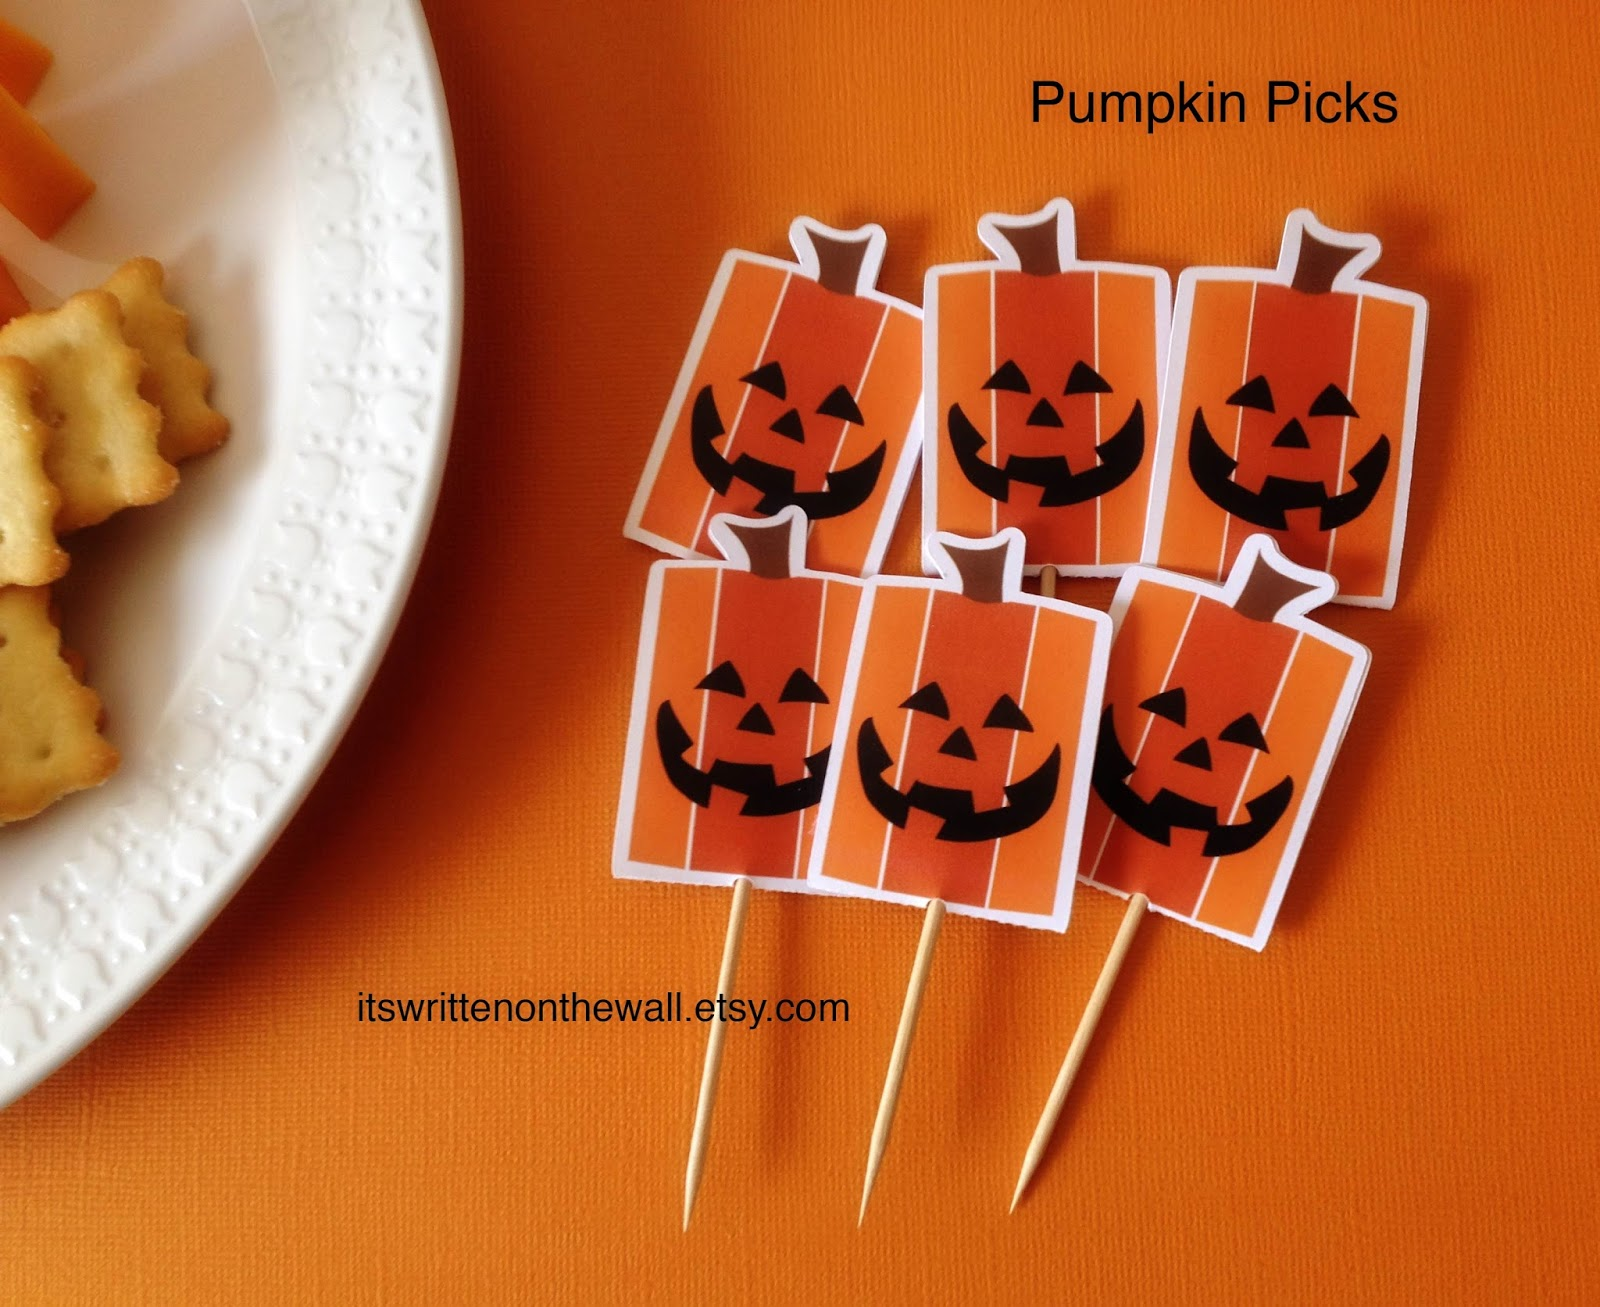 use toothpicks in the pumpkin pics so you can add them to smaller food plates the opening in the food pick is larger enough for a skewer or a toothpick